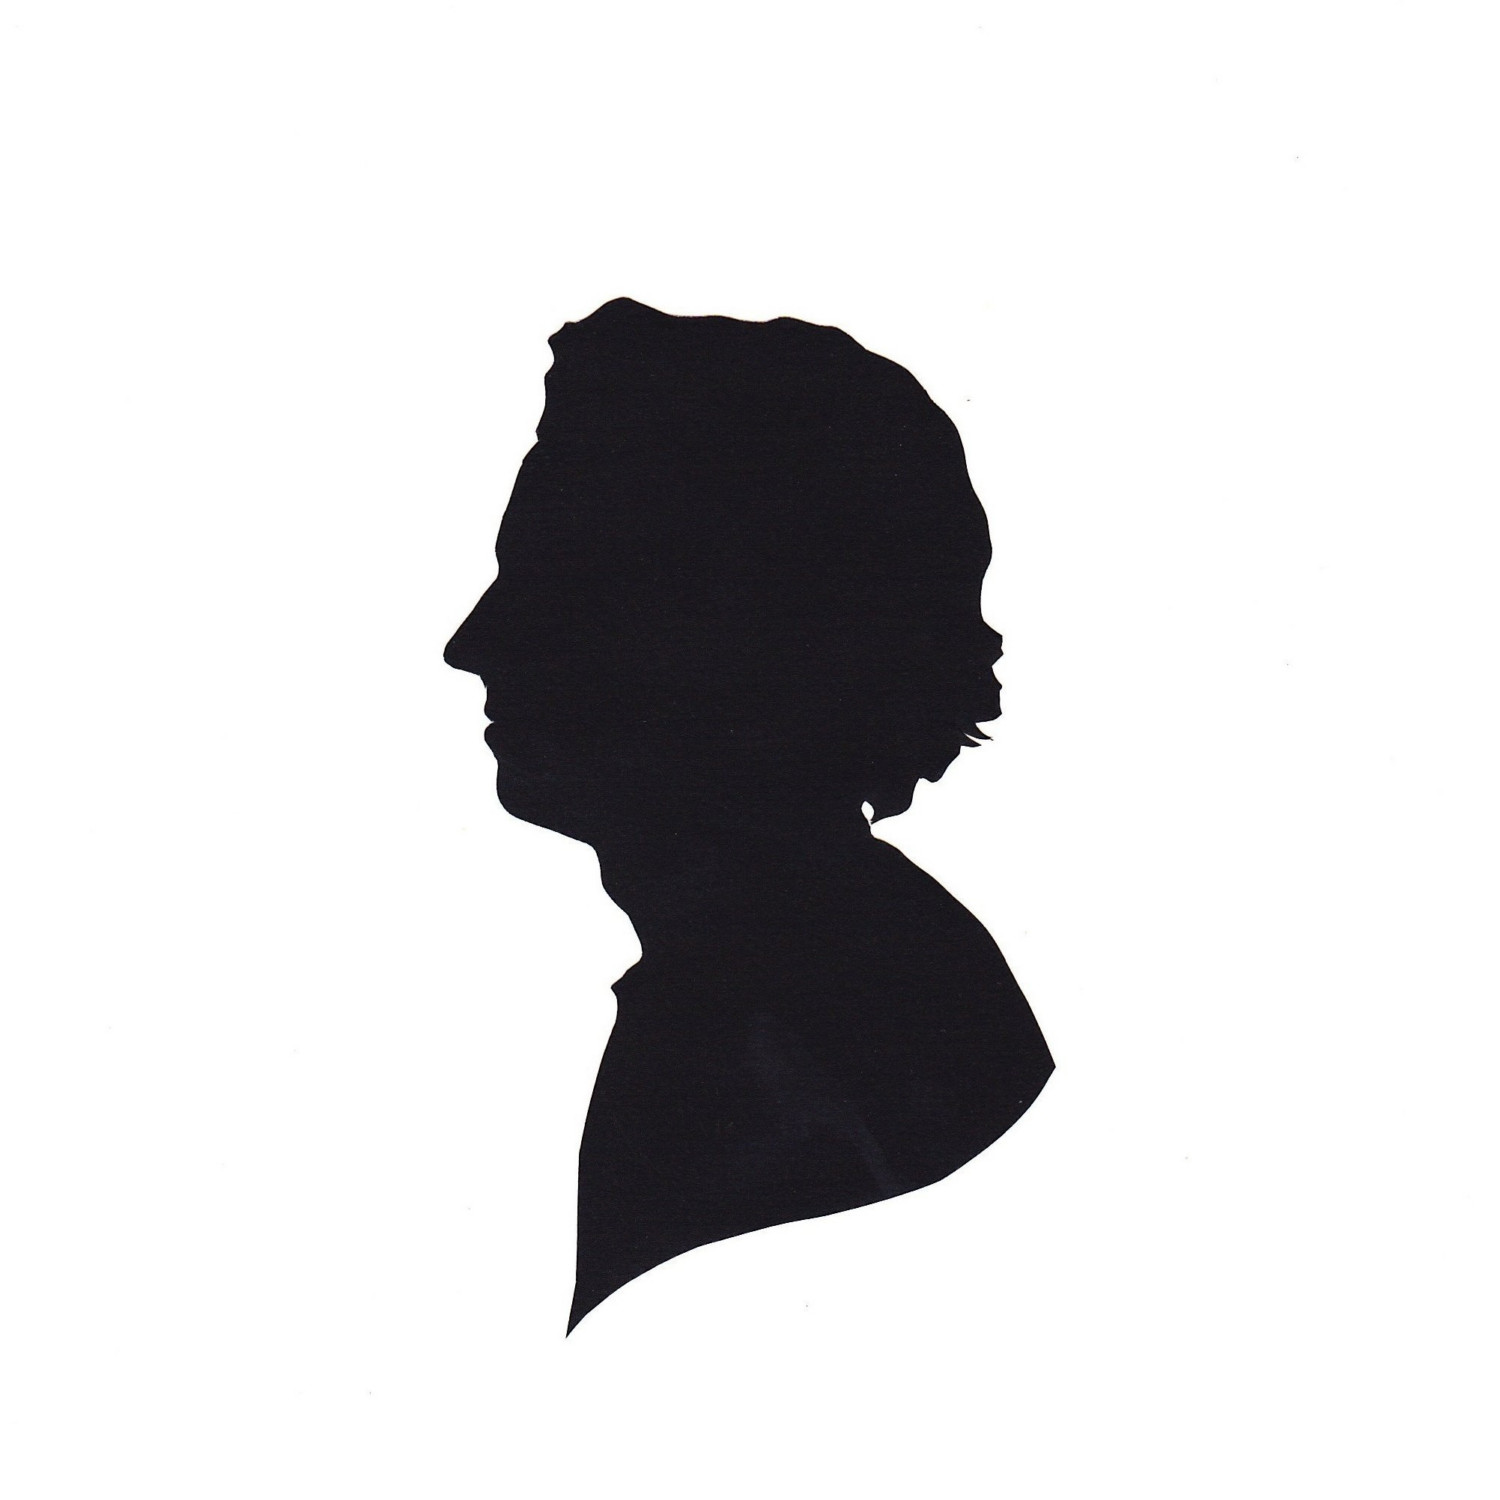 1500x1500 Pix For Silhouette Head Man